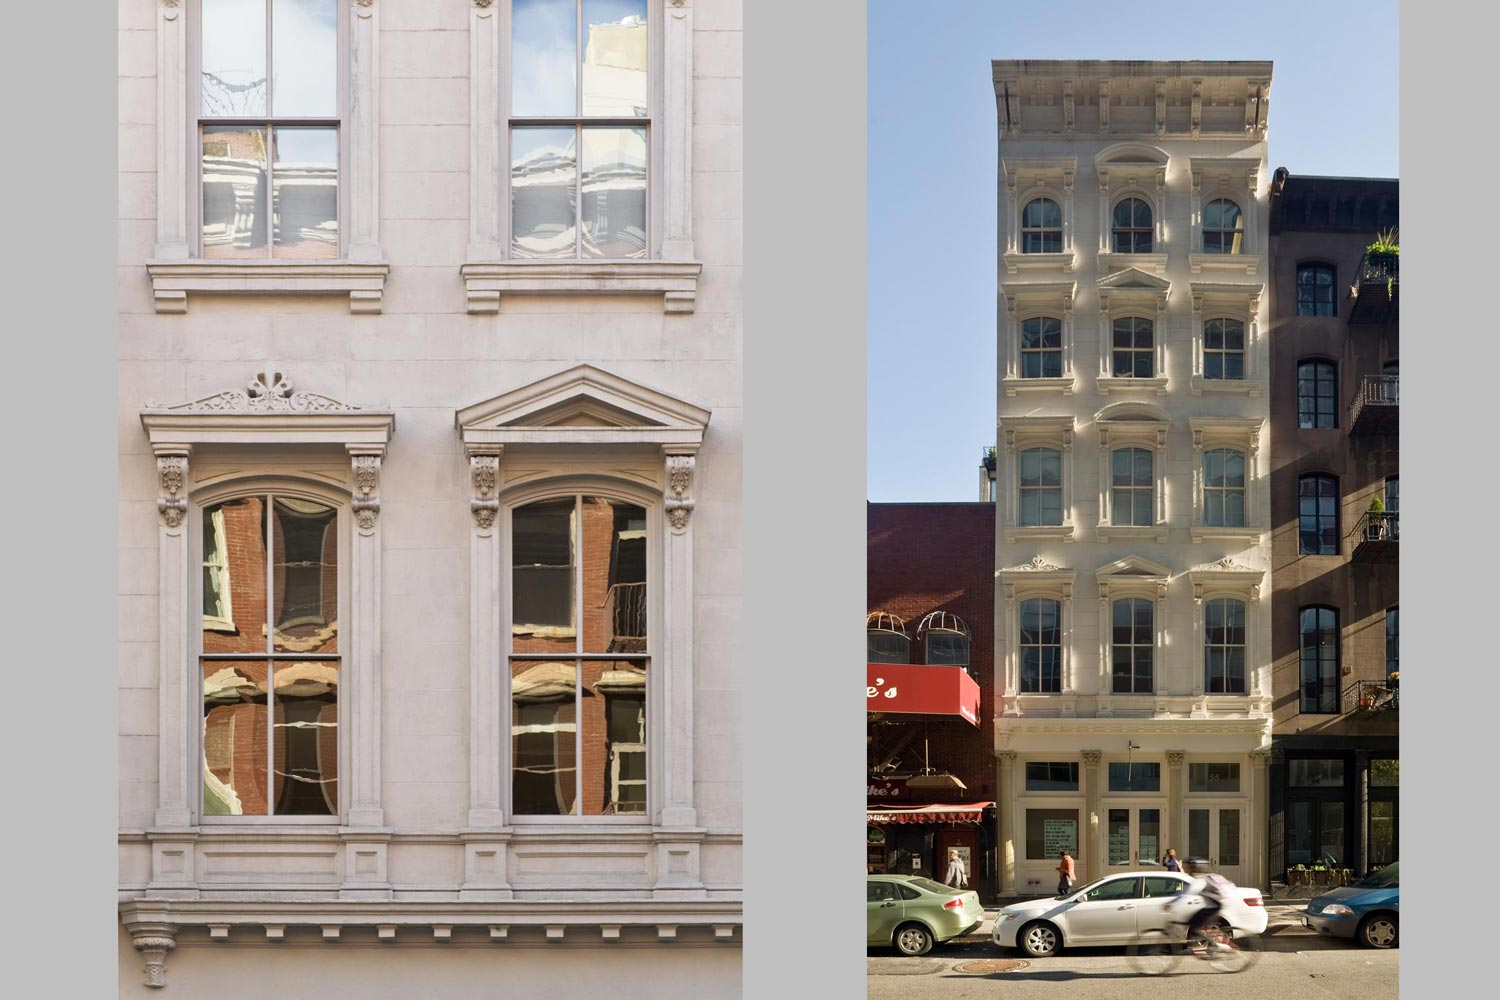 The renovation by OCV Architects addresses the historic preservation of the two facades.